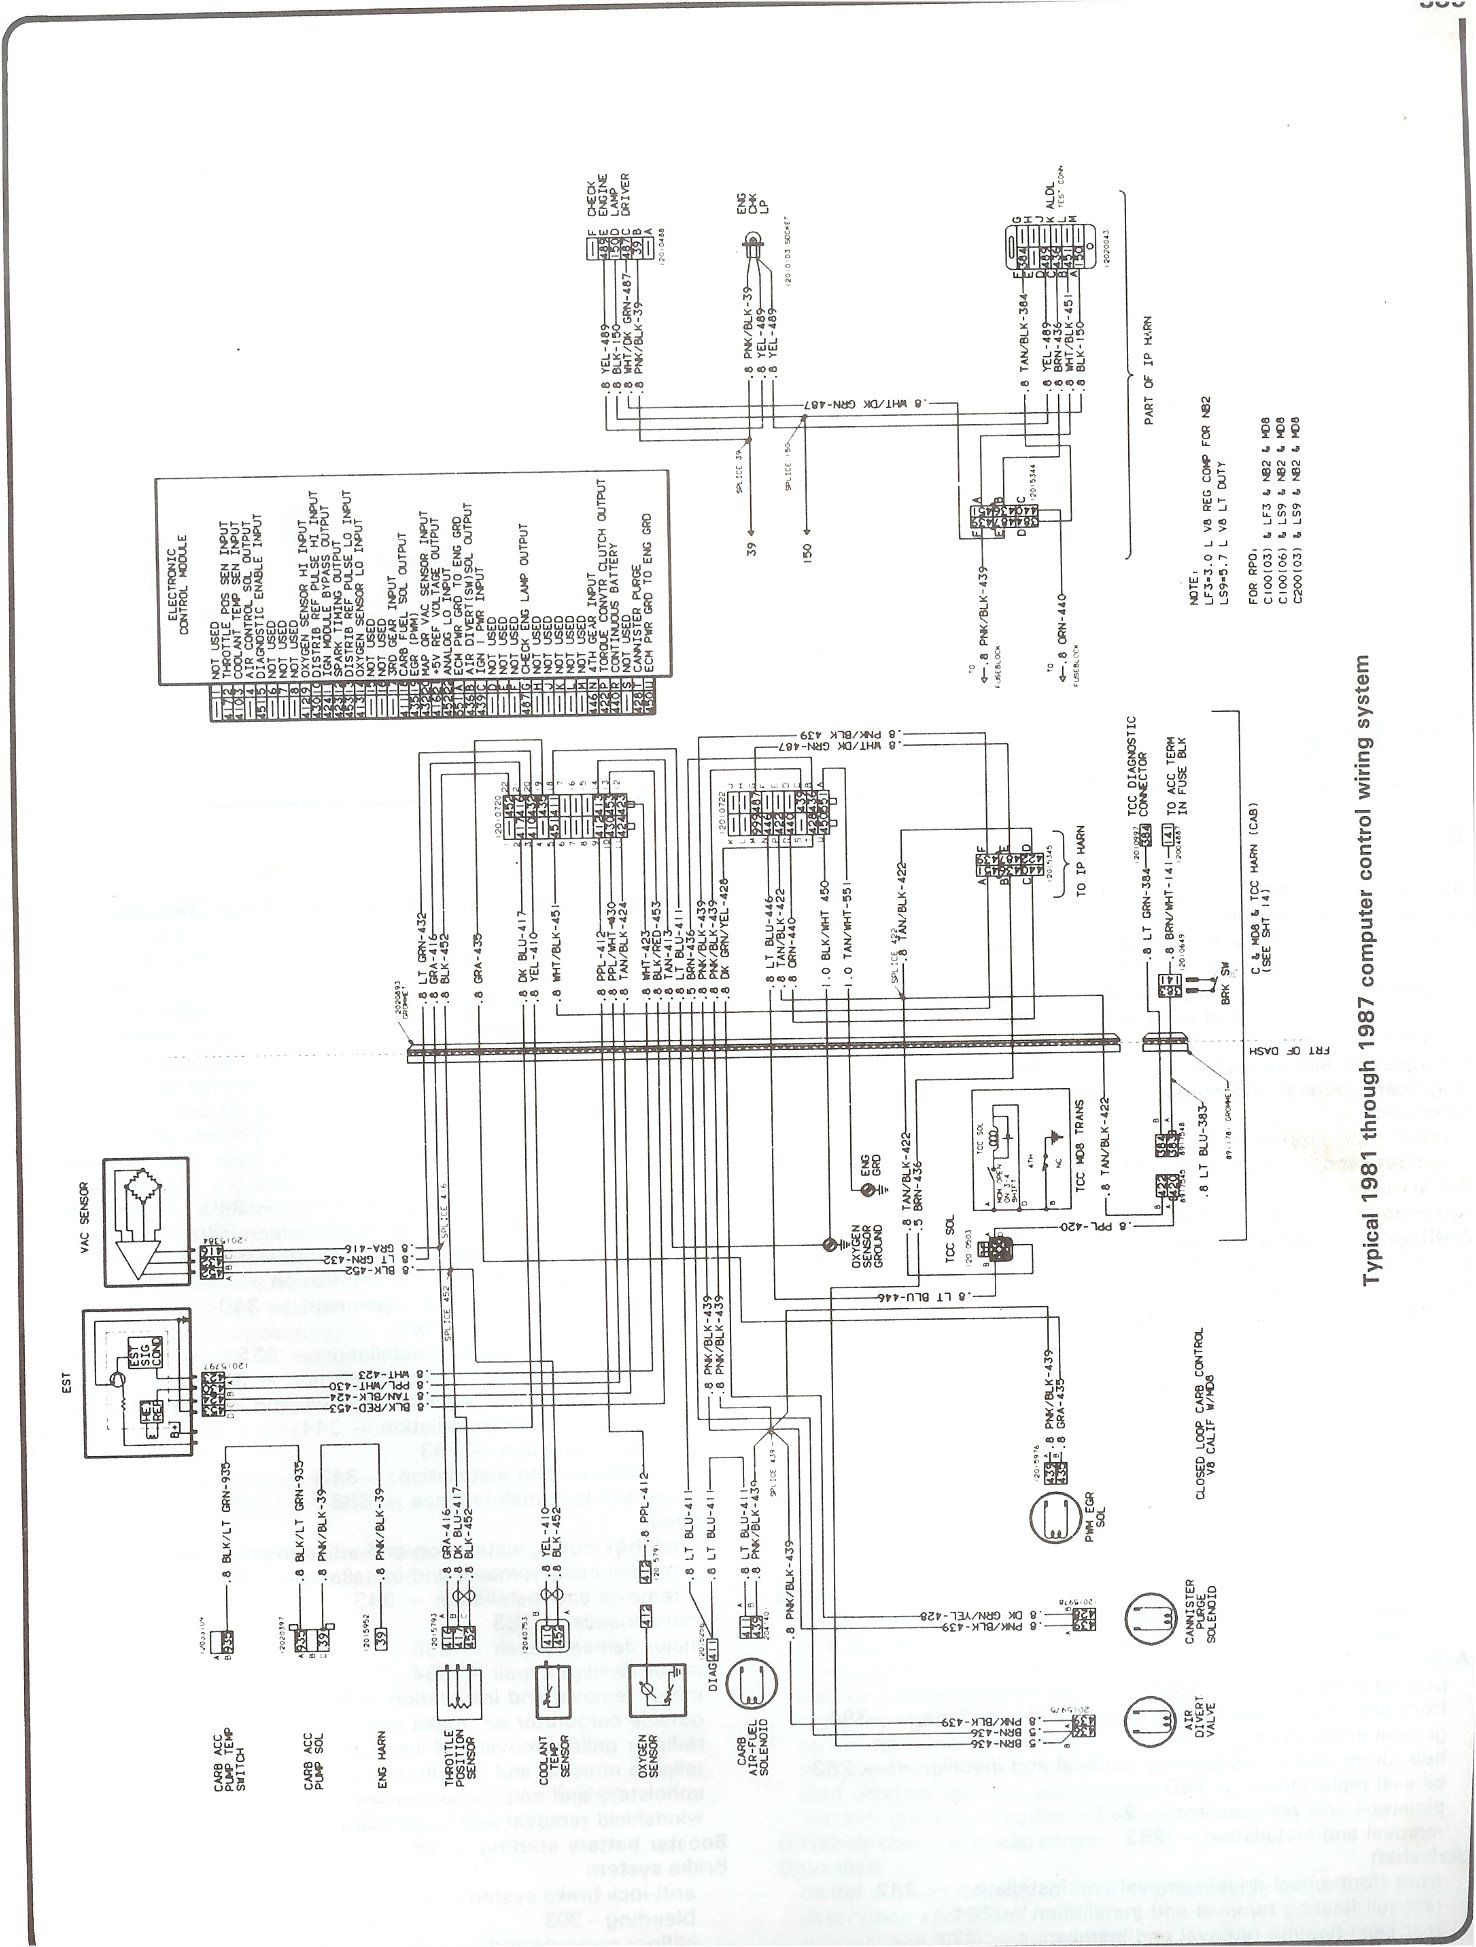 Pontiac 3 4 Engine Head Diagram